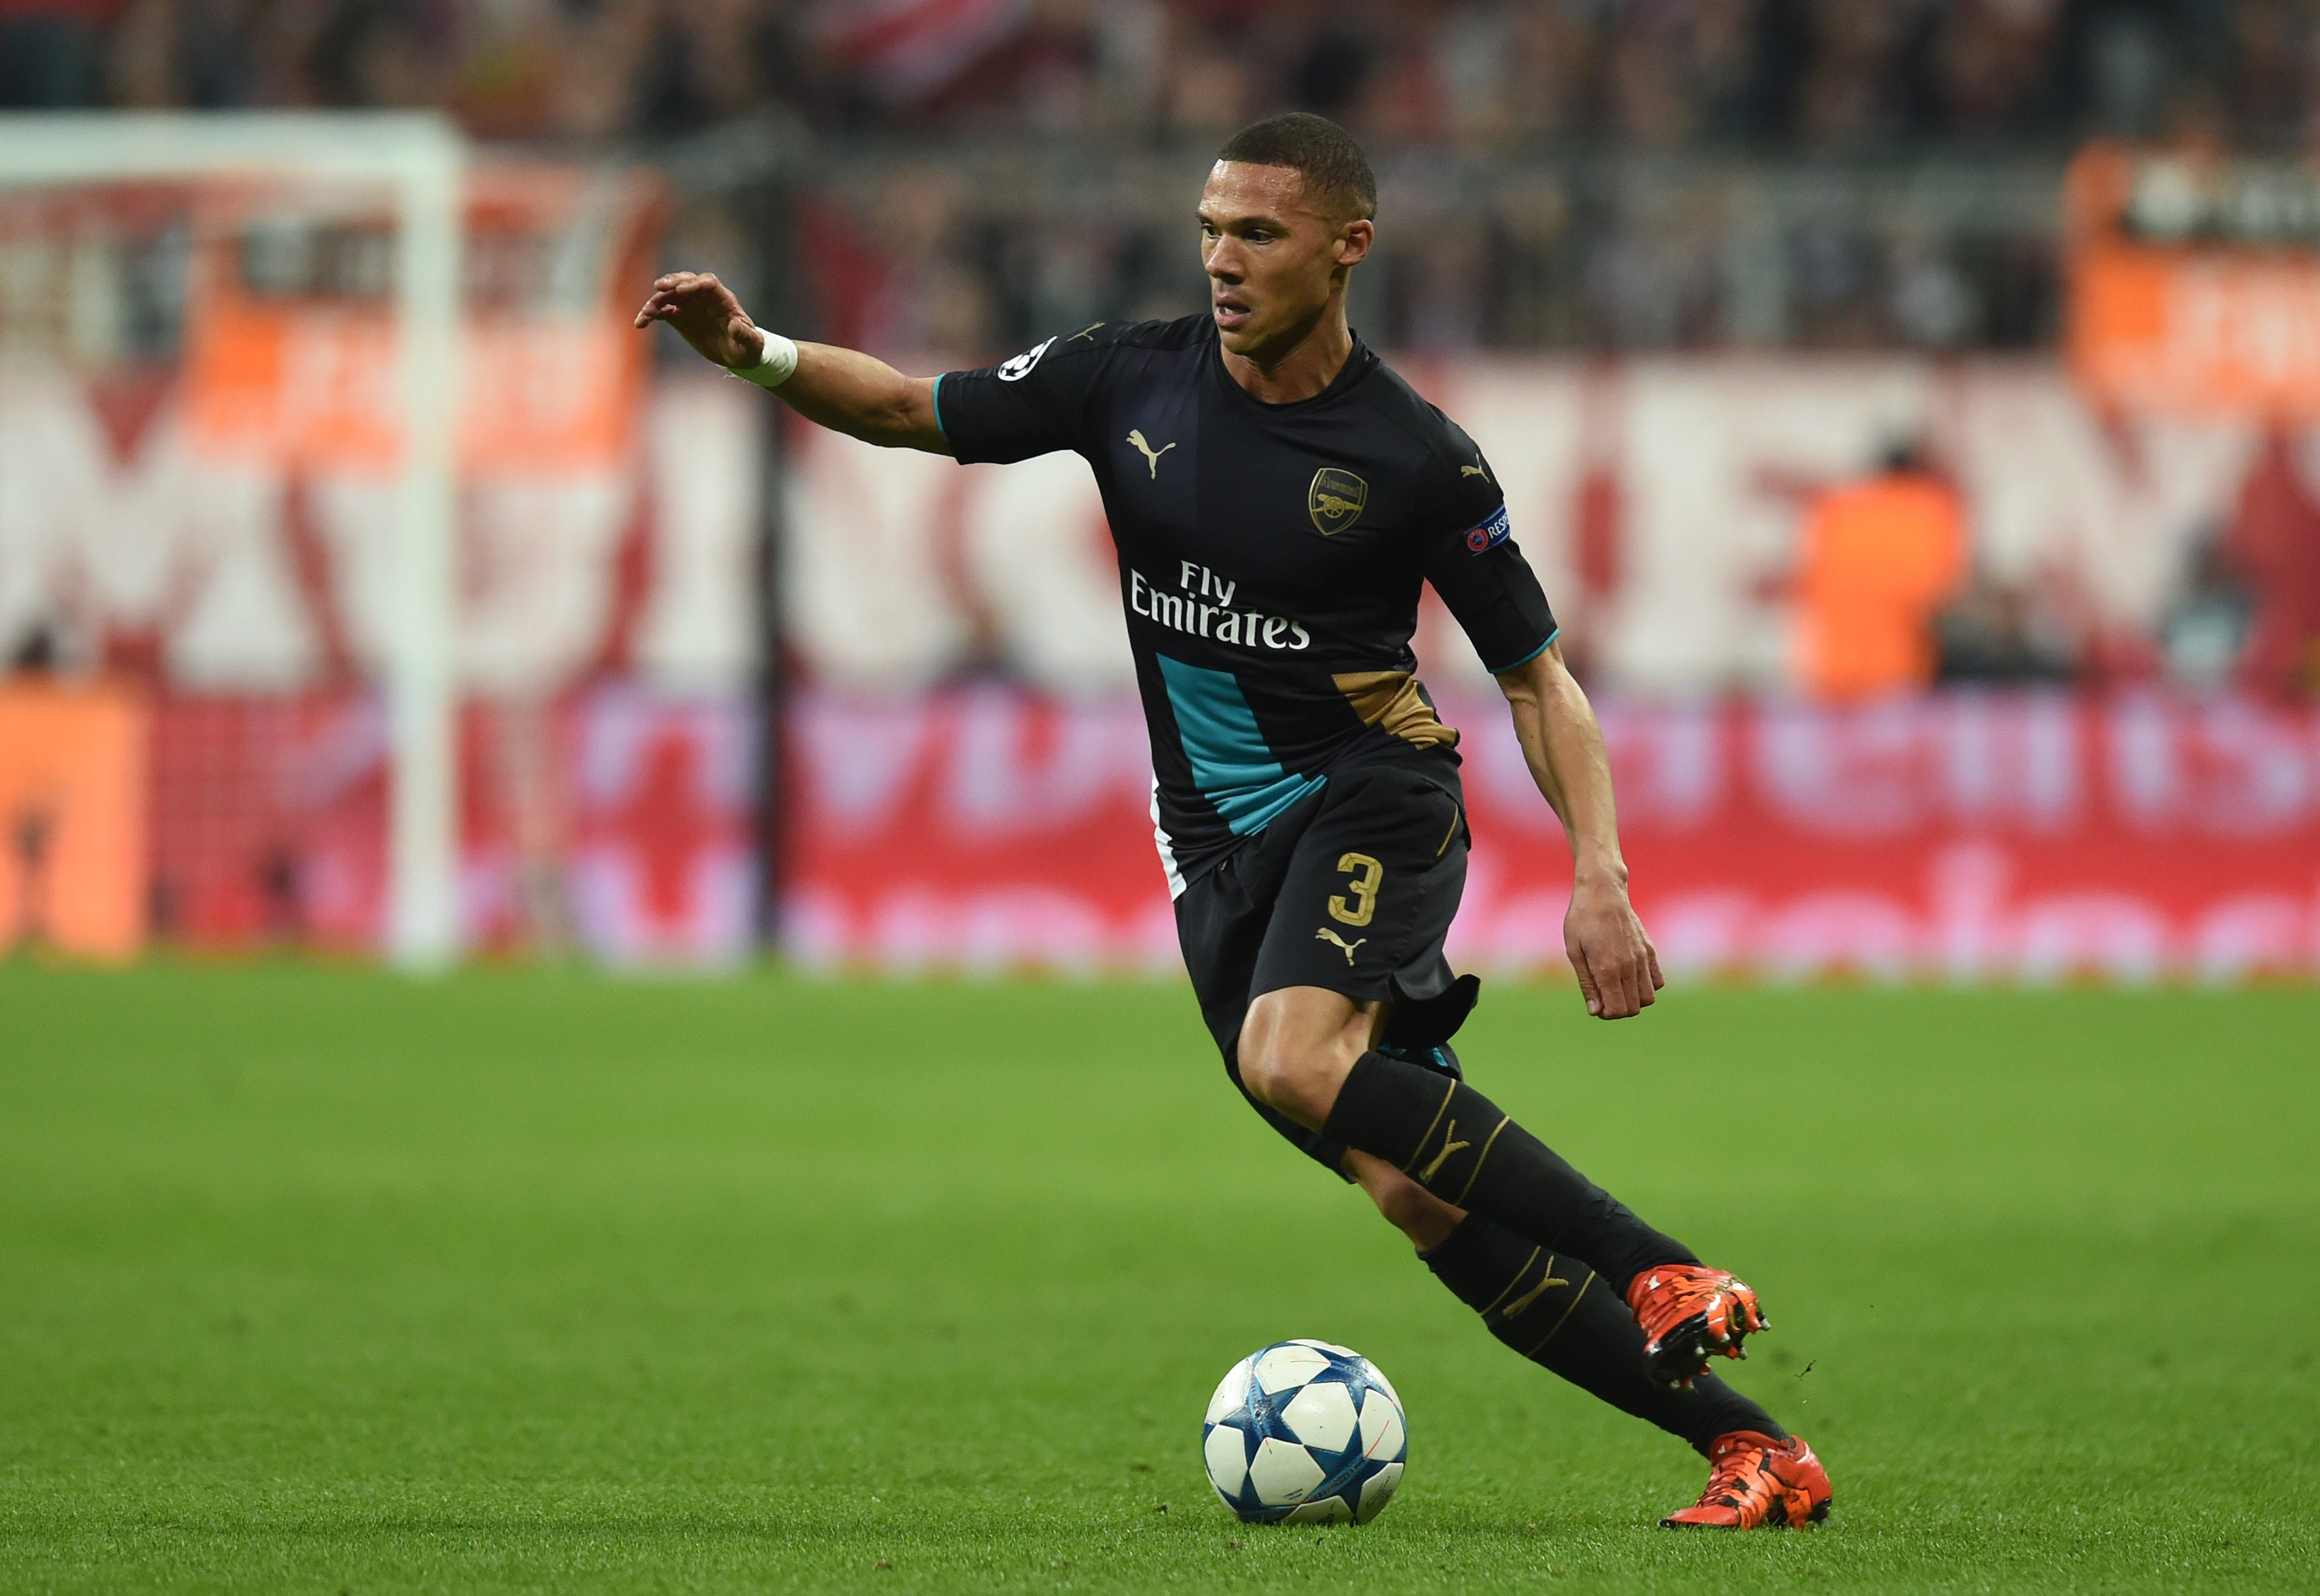 Arsenal's English defender Kieran Gibbs runs with the ball during the UEFA Champions League Group F second-leg football match between FC Bayern Munich and Arsenal FC in Munich, southern Germany, on November 4, 2015. Bayern won the match 5-1. AFP PHOTO / CHRISTOF STACHE (Photo credit should read CHRISTOF STACHE/AFP/Getty Images)